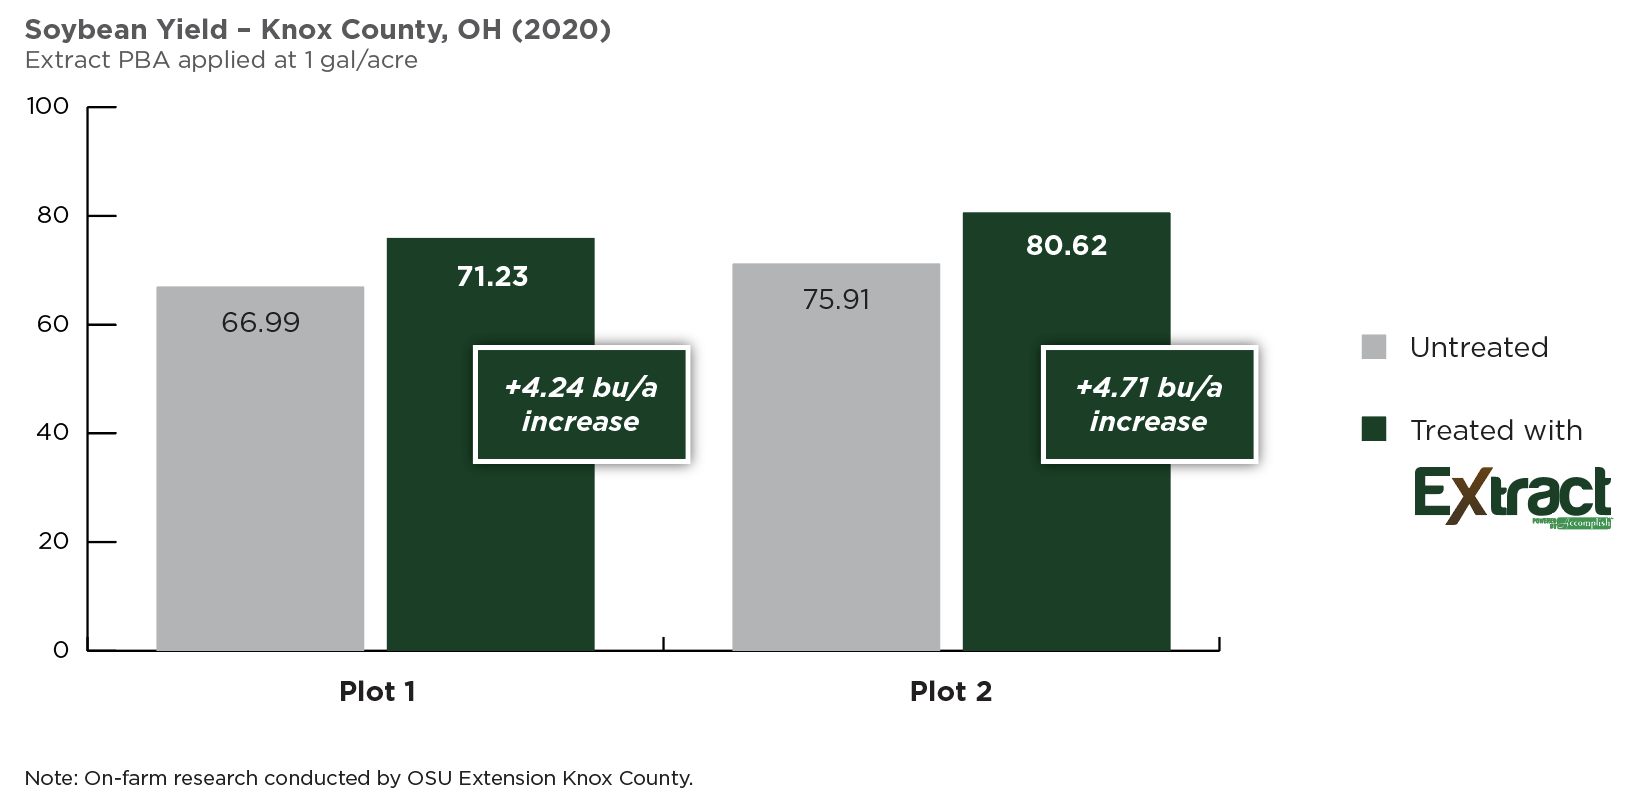 Extract_Soybean Yield_Knox County_OH